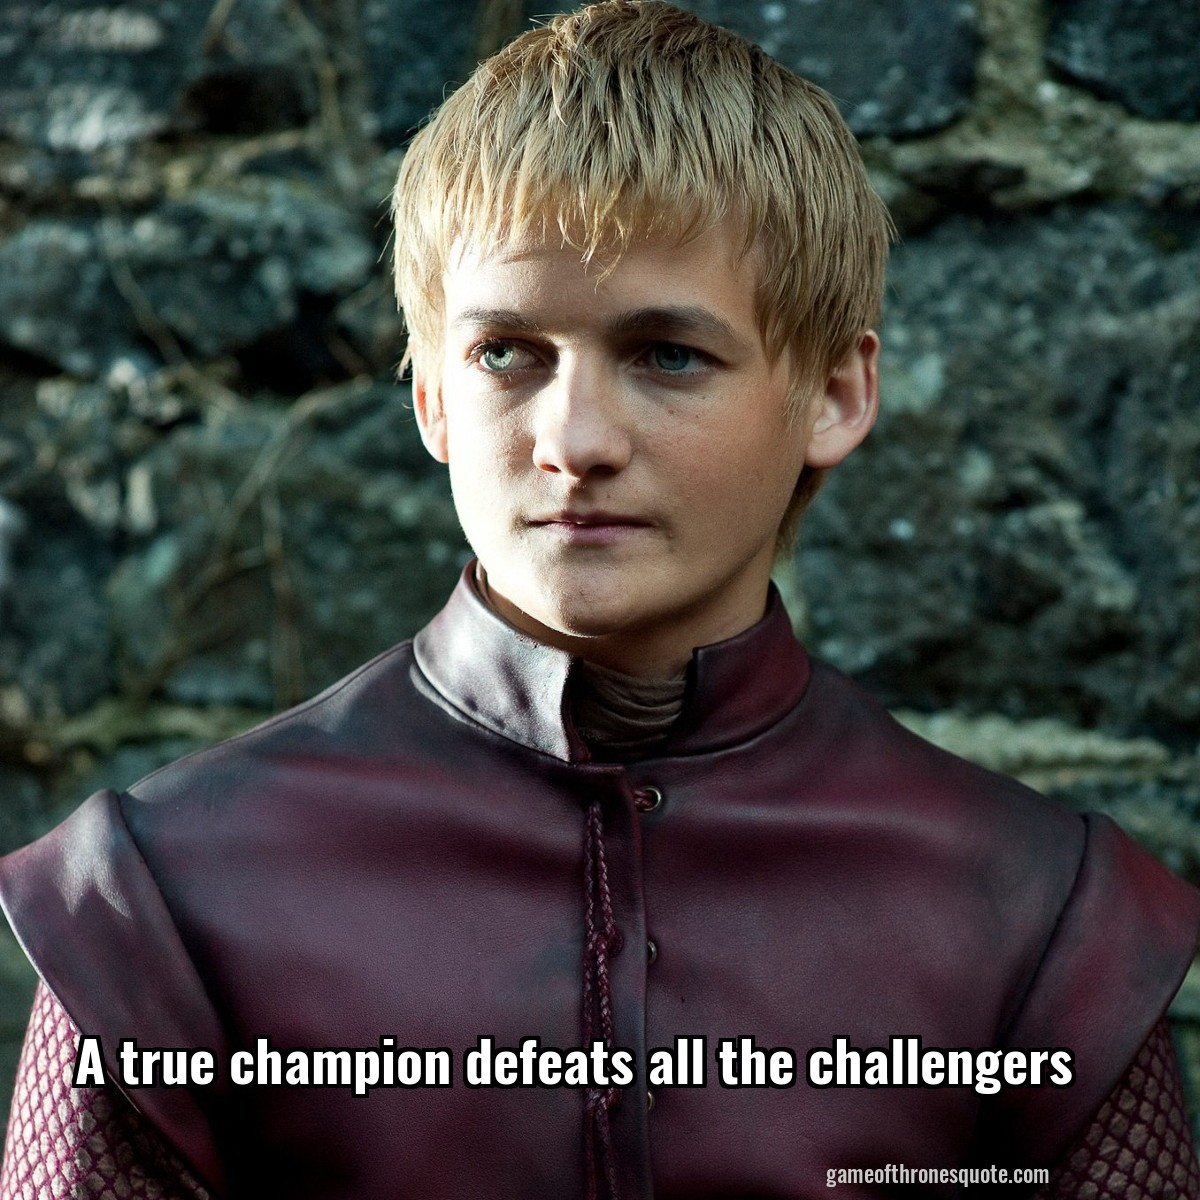 A true champion defeats all the challengers